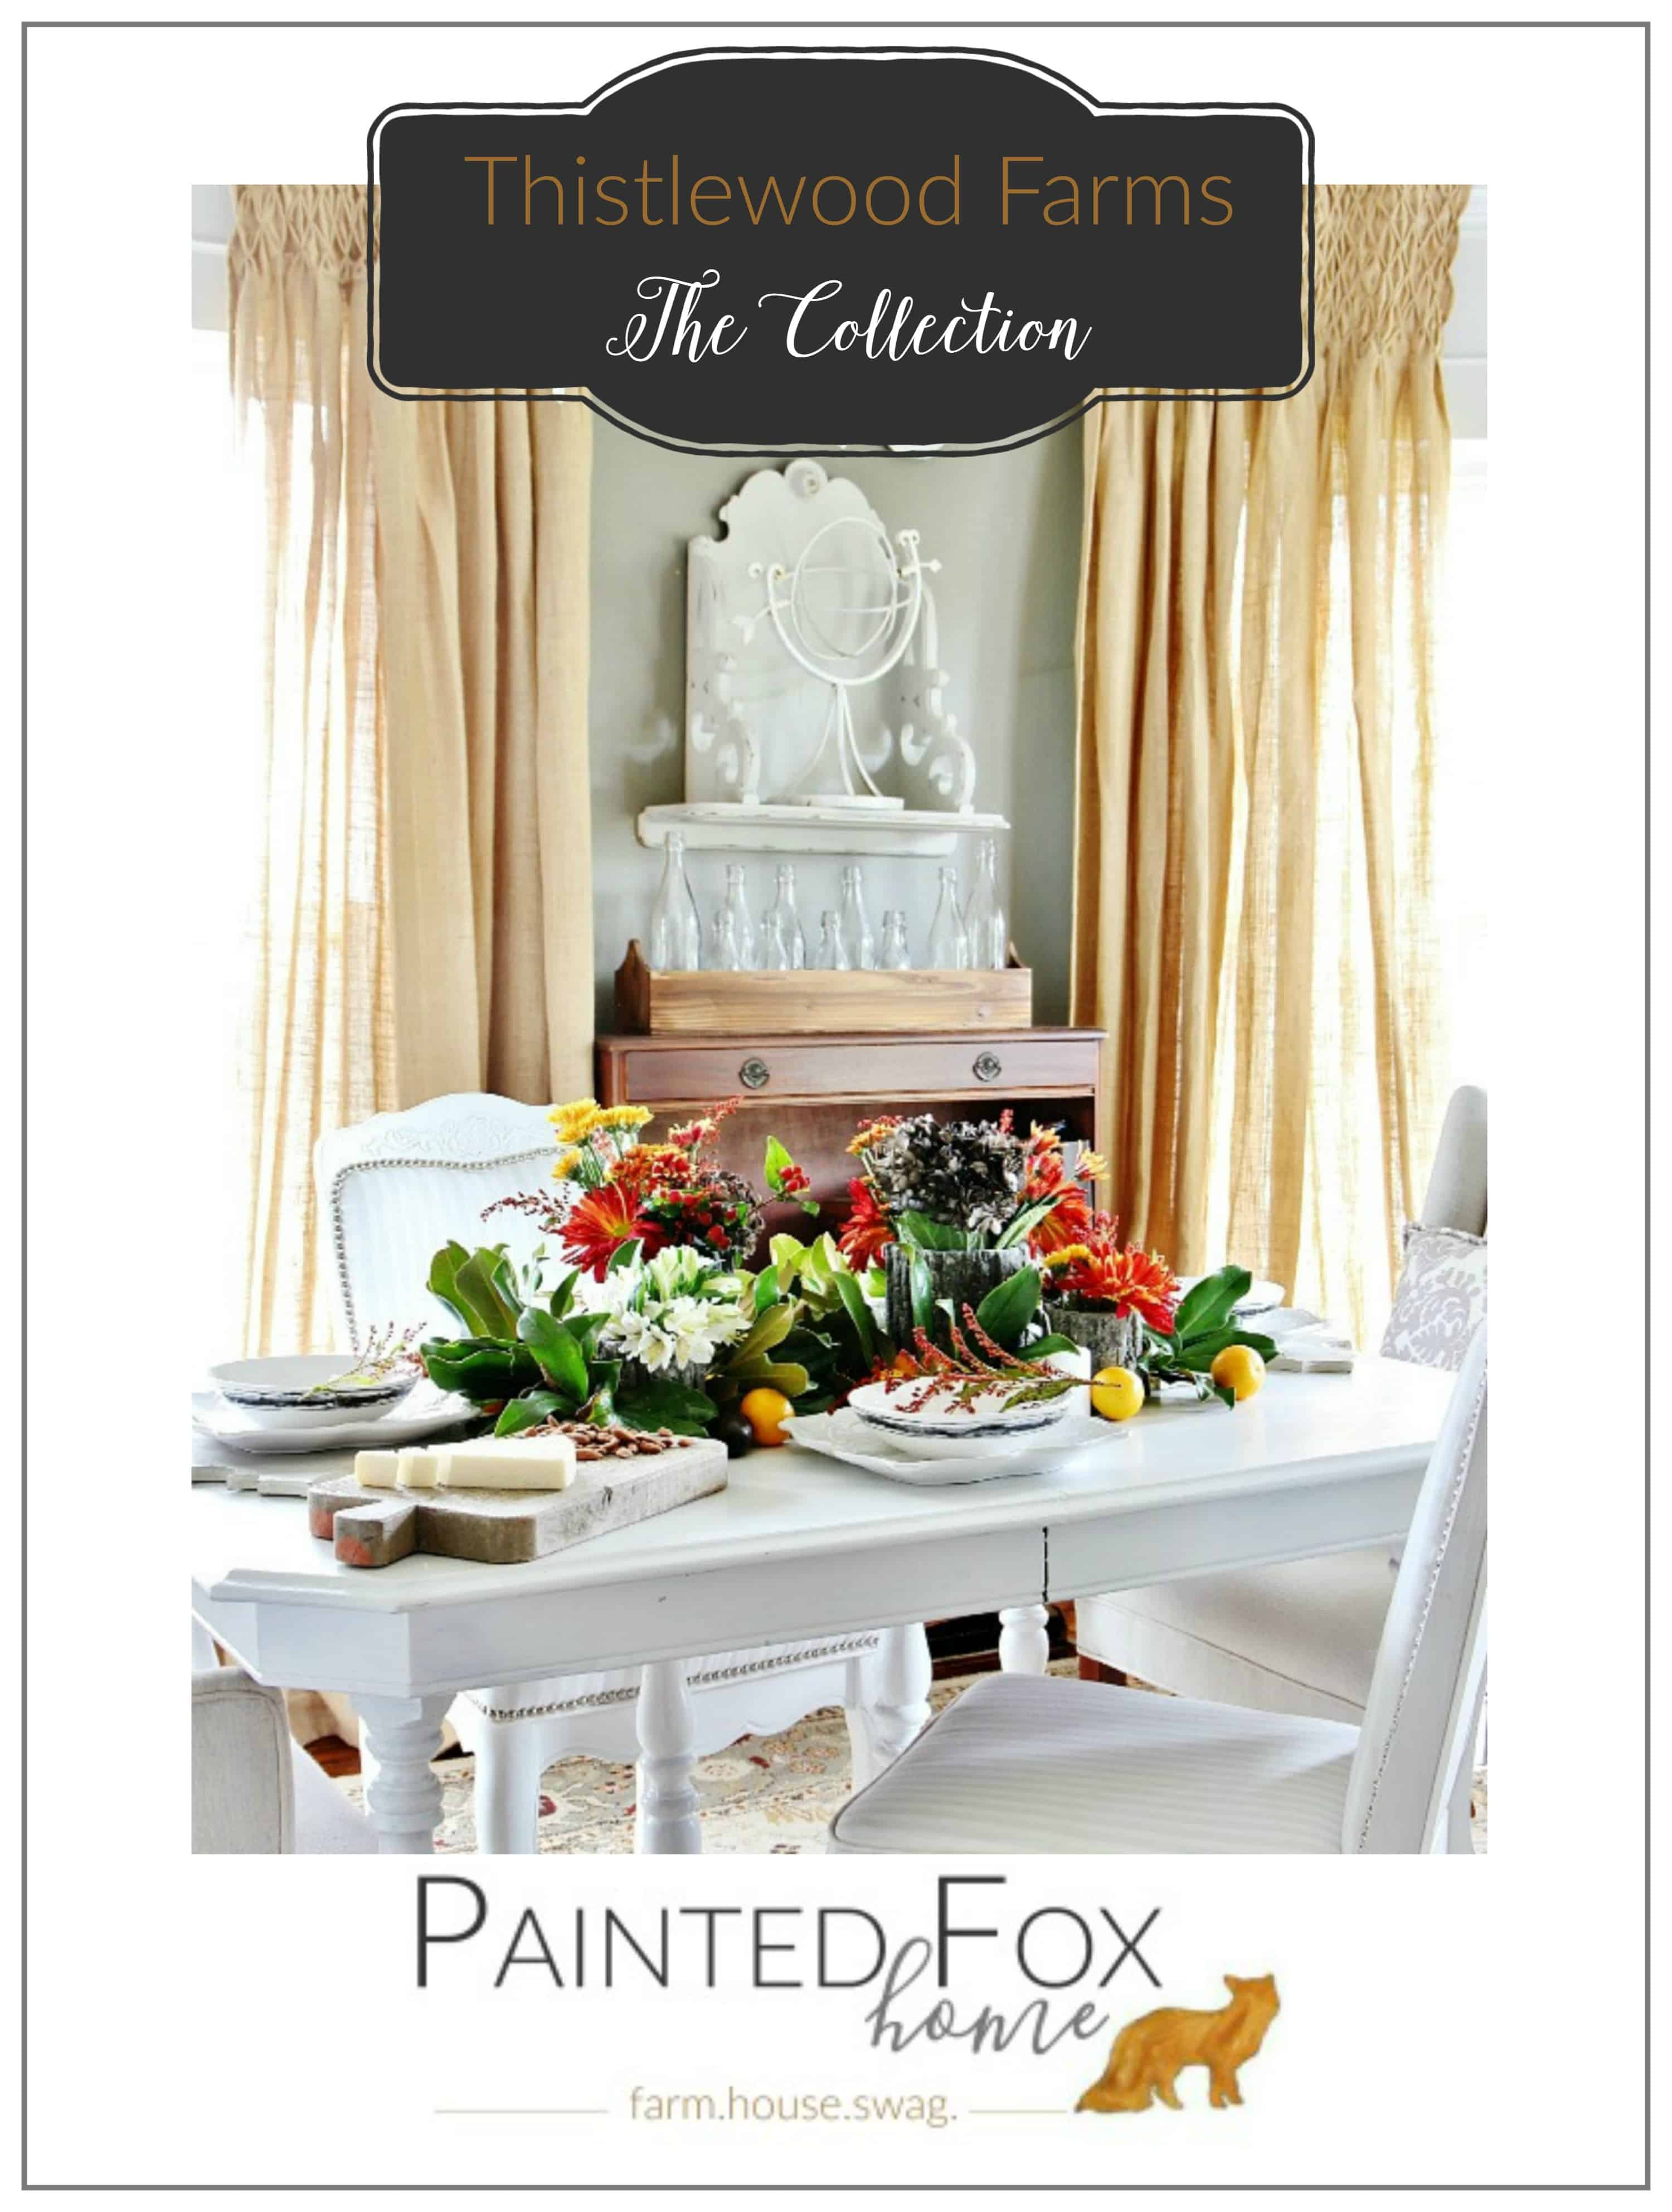 Painted Fox Home - The Collection